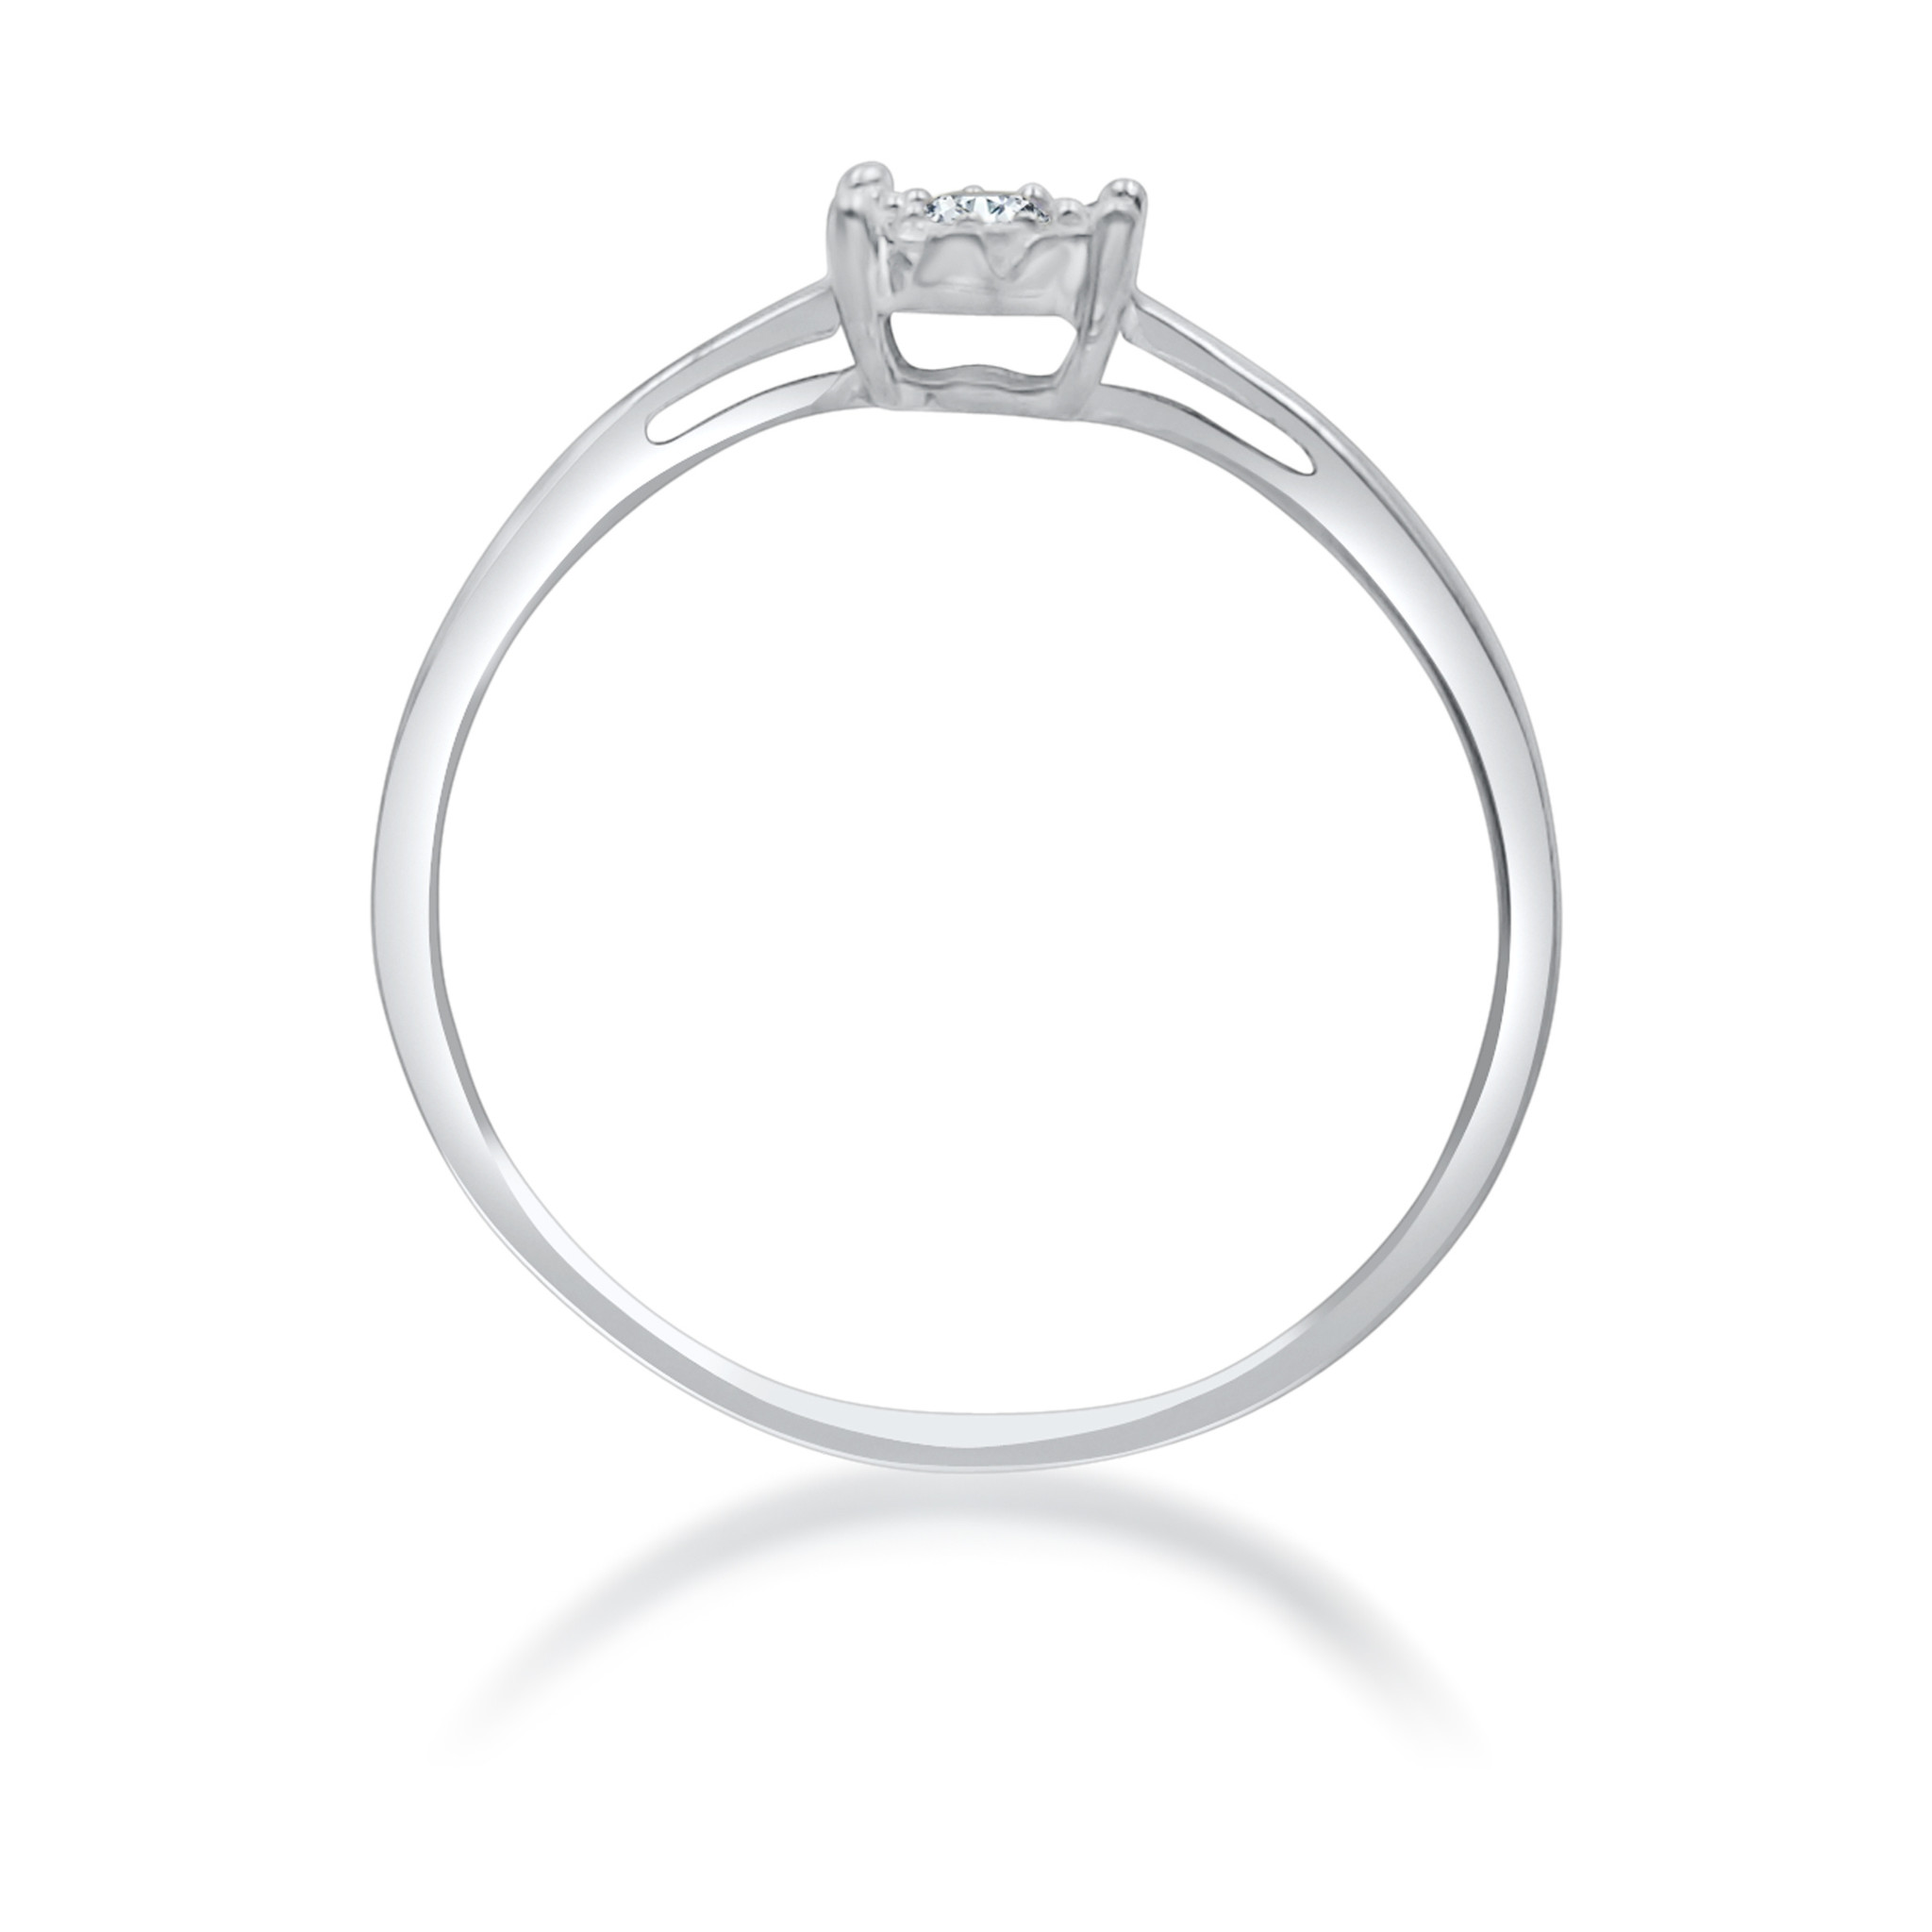 18kt white gold engagement ring with 0.15 ct diamonds